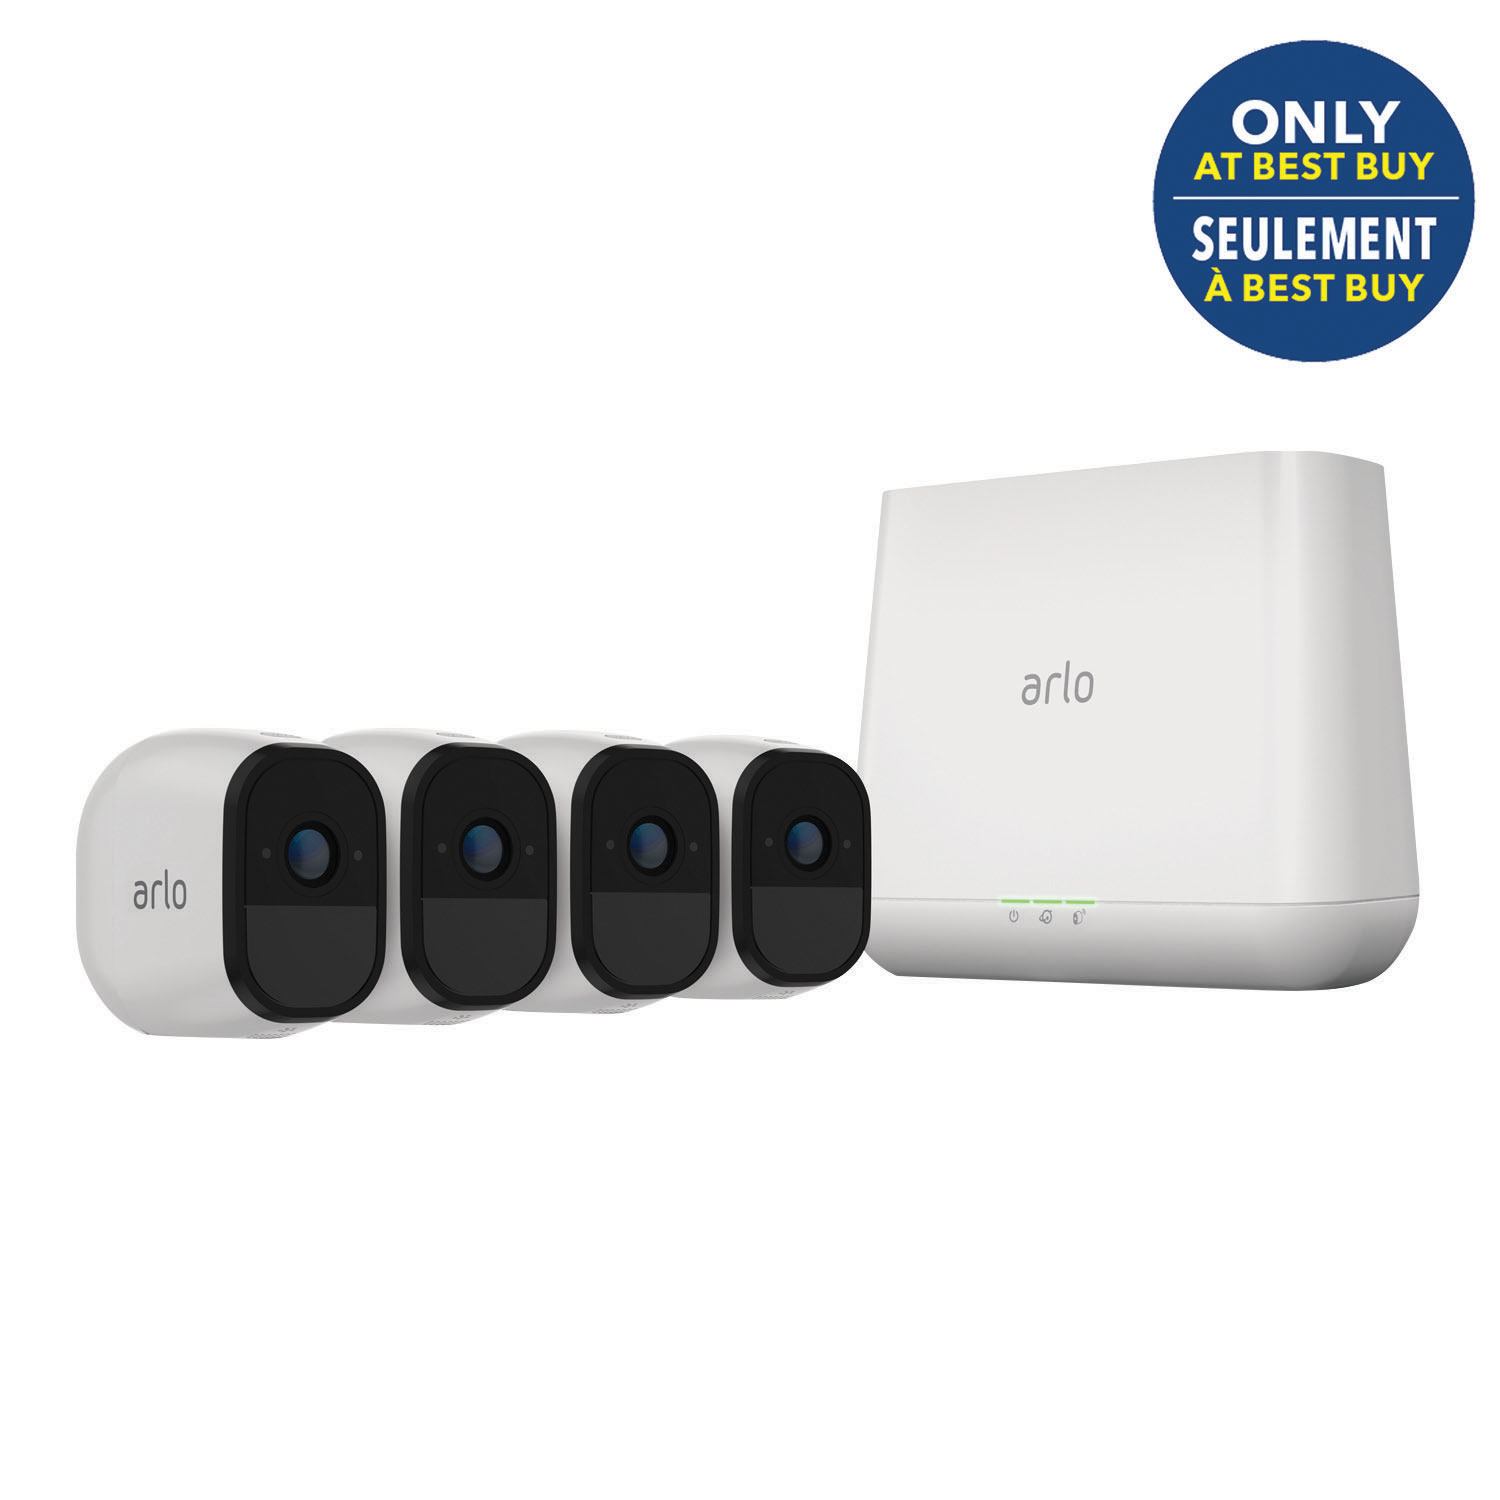 Save an extra 15 on any security camera in store only for Best buy security systems